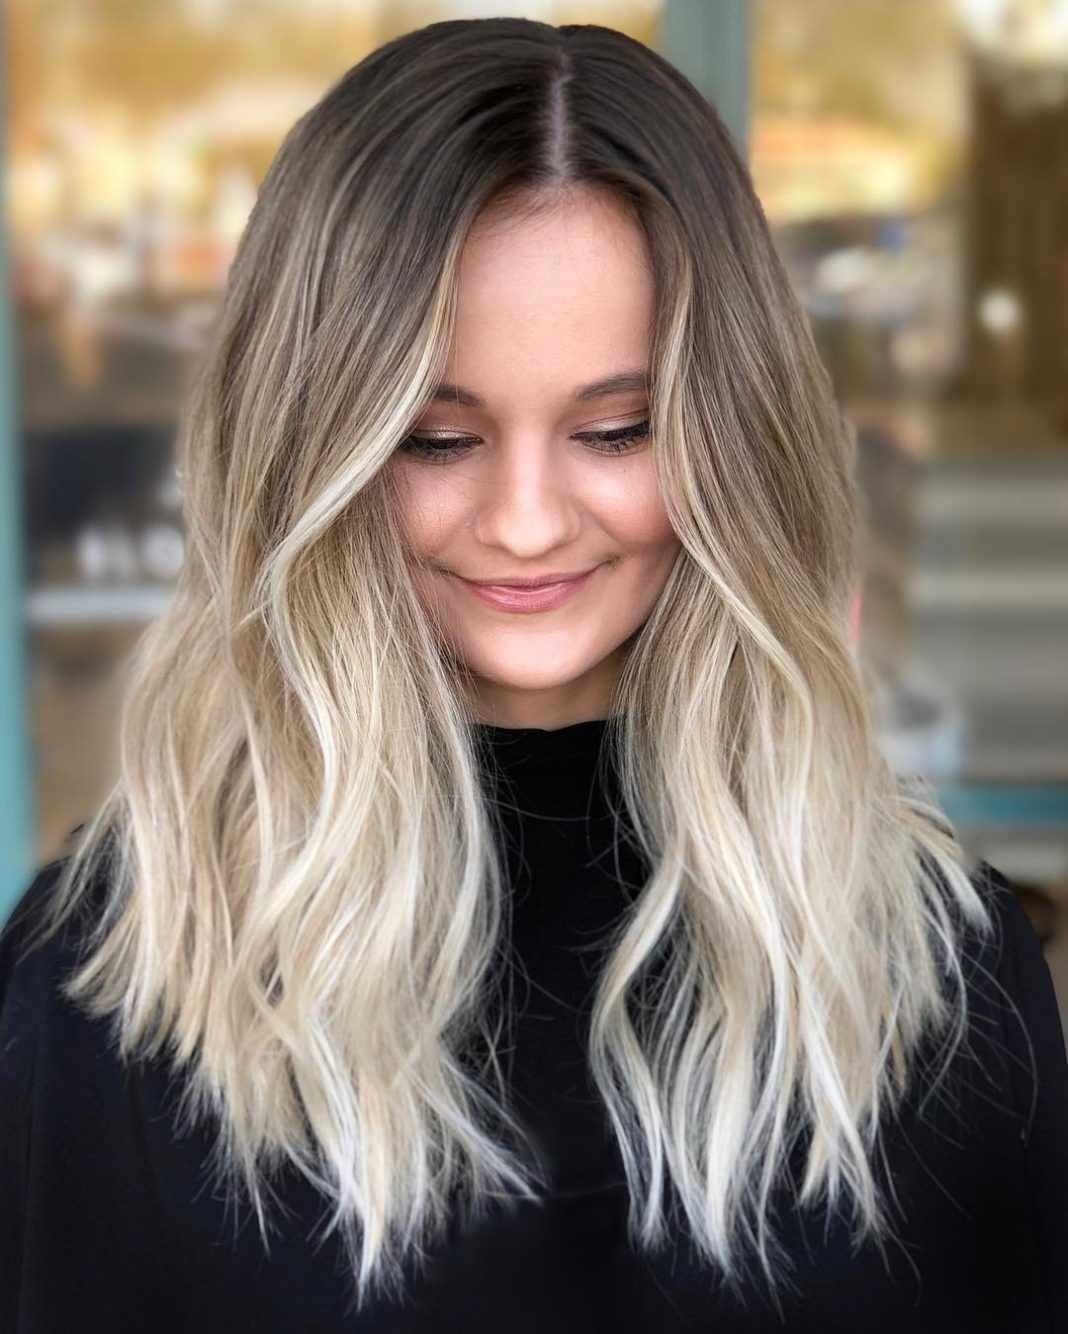 The Best 25 Best Balayage Haircuts 2019 – New Balayage Hair Color Styles Art Hair In 2019 Hair Pictures